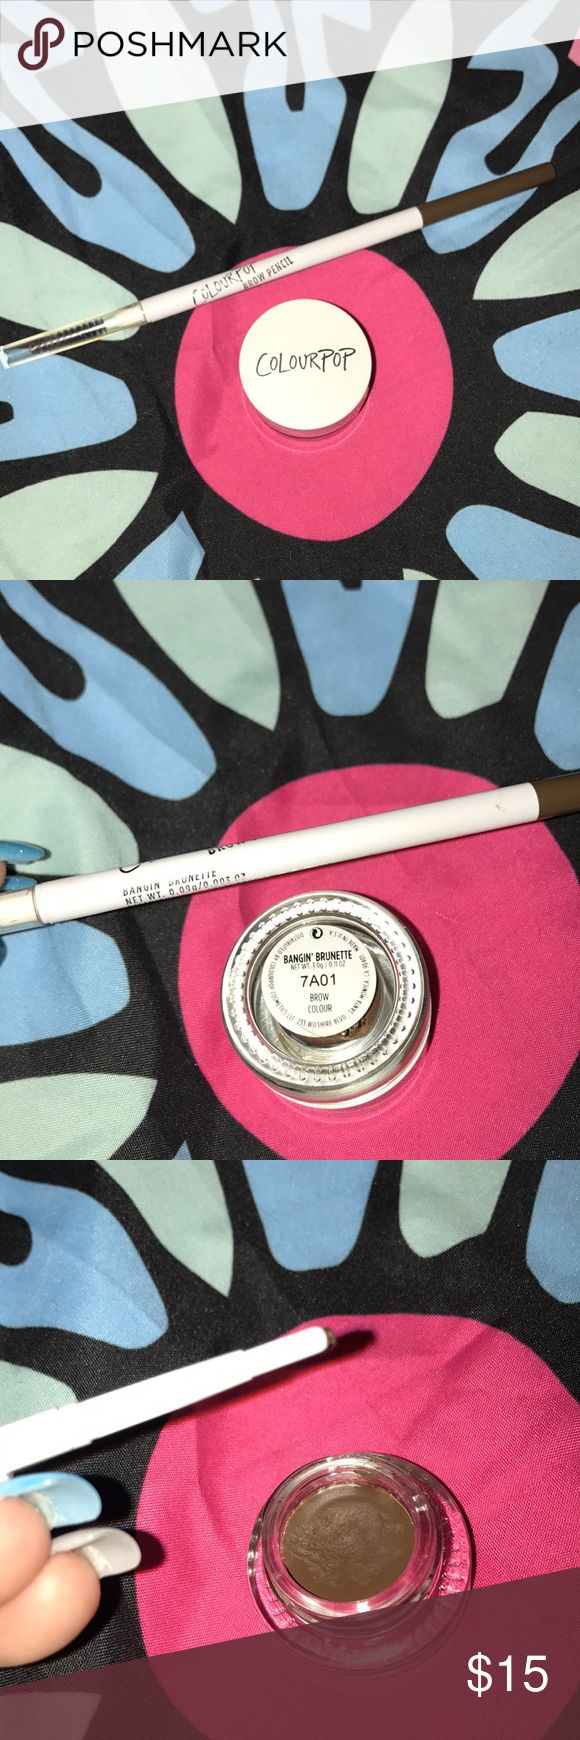 ColourPop Brow Bundle Colourpop brow bundle in bangin' brunette! Included Colourpop brow pencil and Colourpop brow gel pot. Both only used once or twice before I switched to Anastasia Beverly Hills. Tags: rag & bone nasty gal UNIF dollskill American apparel Tobi Charlotte Russe h&m lf free people forever 21 Bebe dolls kill classy American Eagle Hollister billabong la Hearts Kendall and Kylie lf express John galt pacsun Kat Von d Urban Decay naked Sephora ulta tarte ColourPop Makeup Eyebrow…